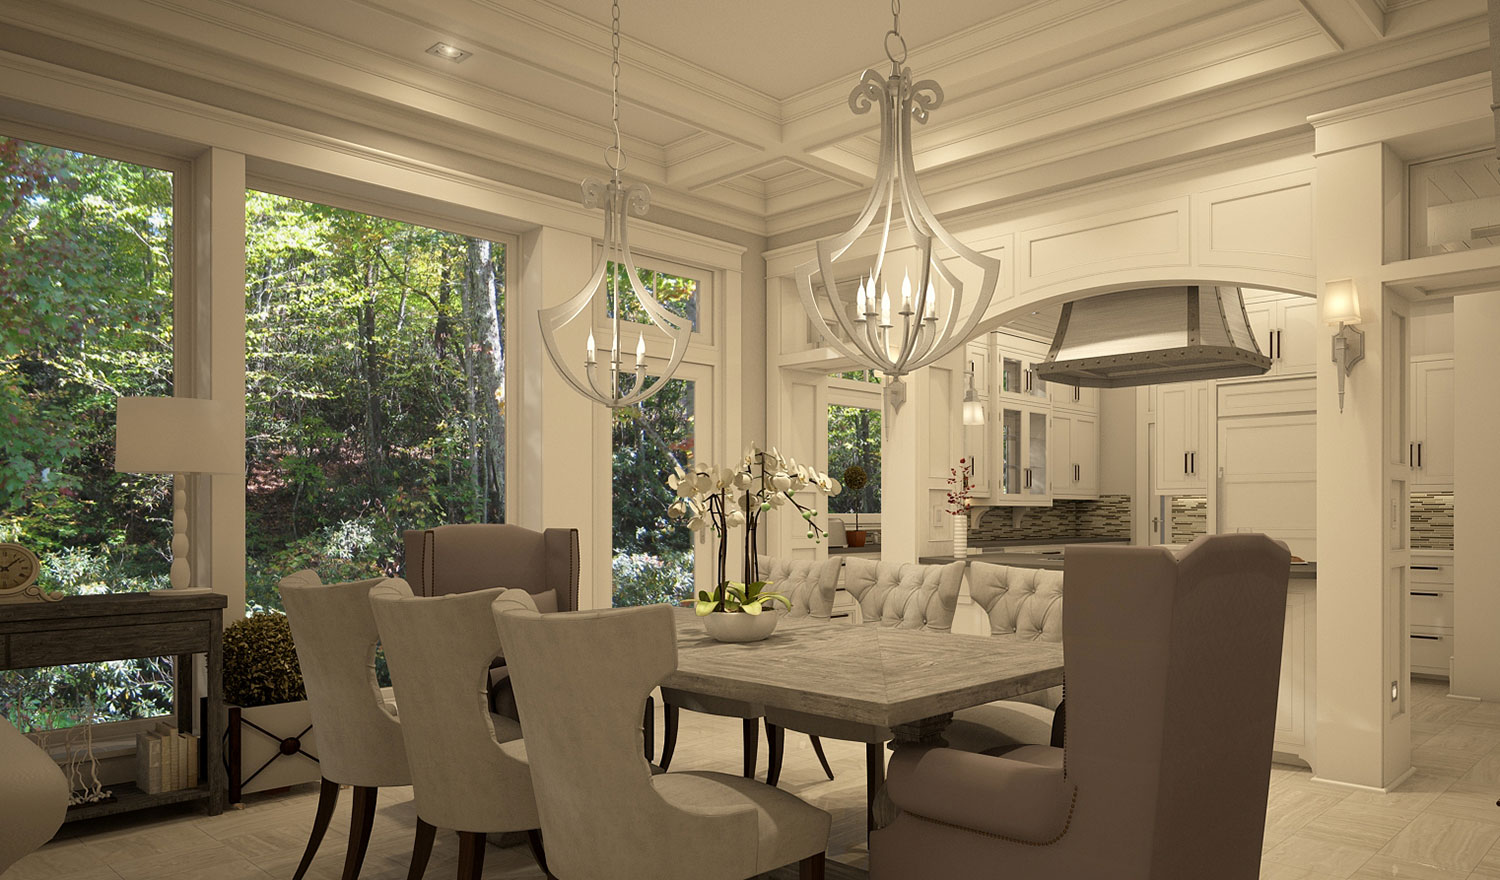 Residential House Interior Design - Furniture, Ceiling And Lighting Curation